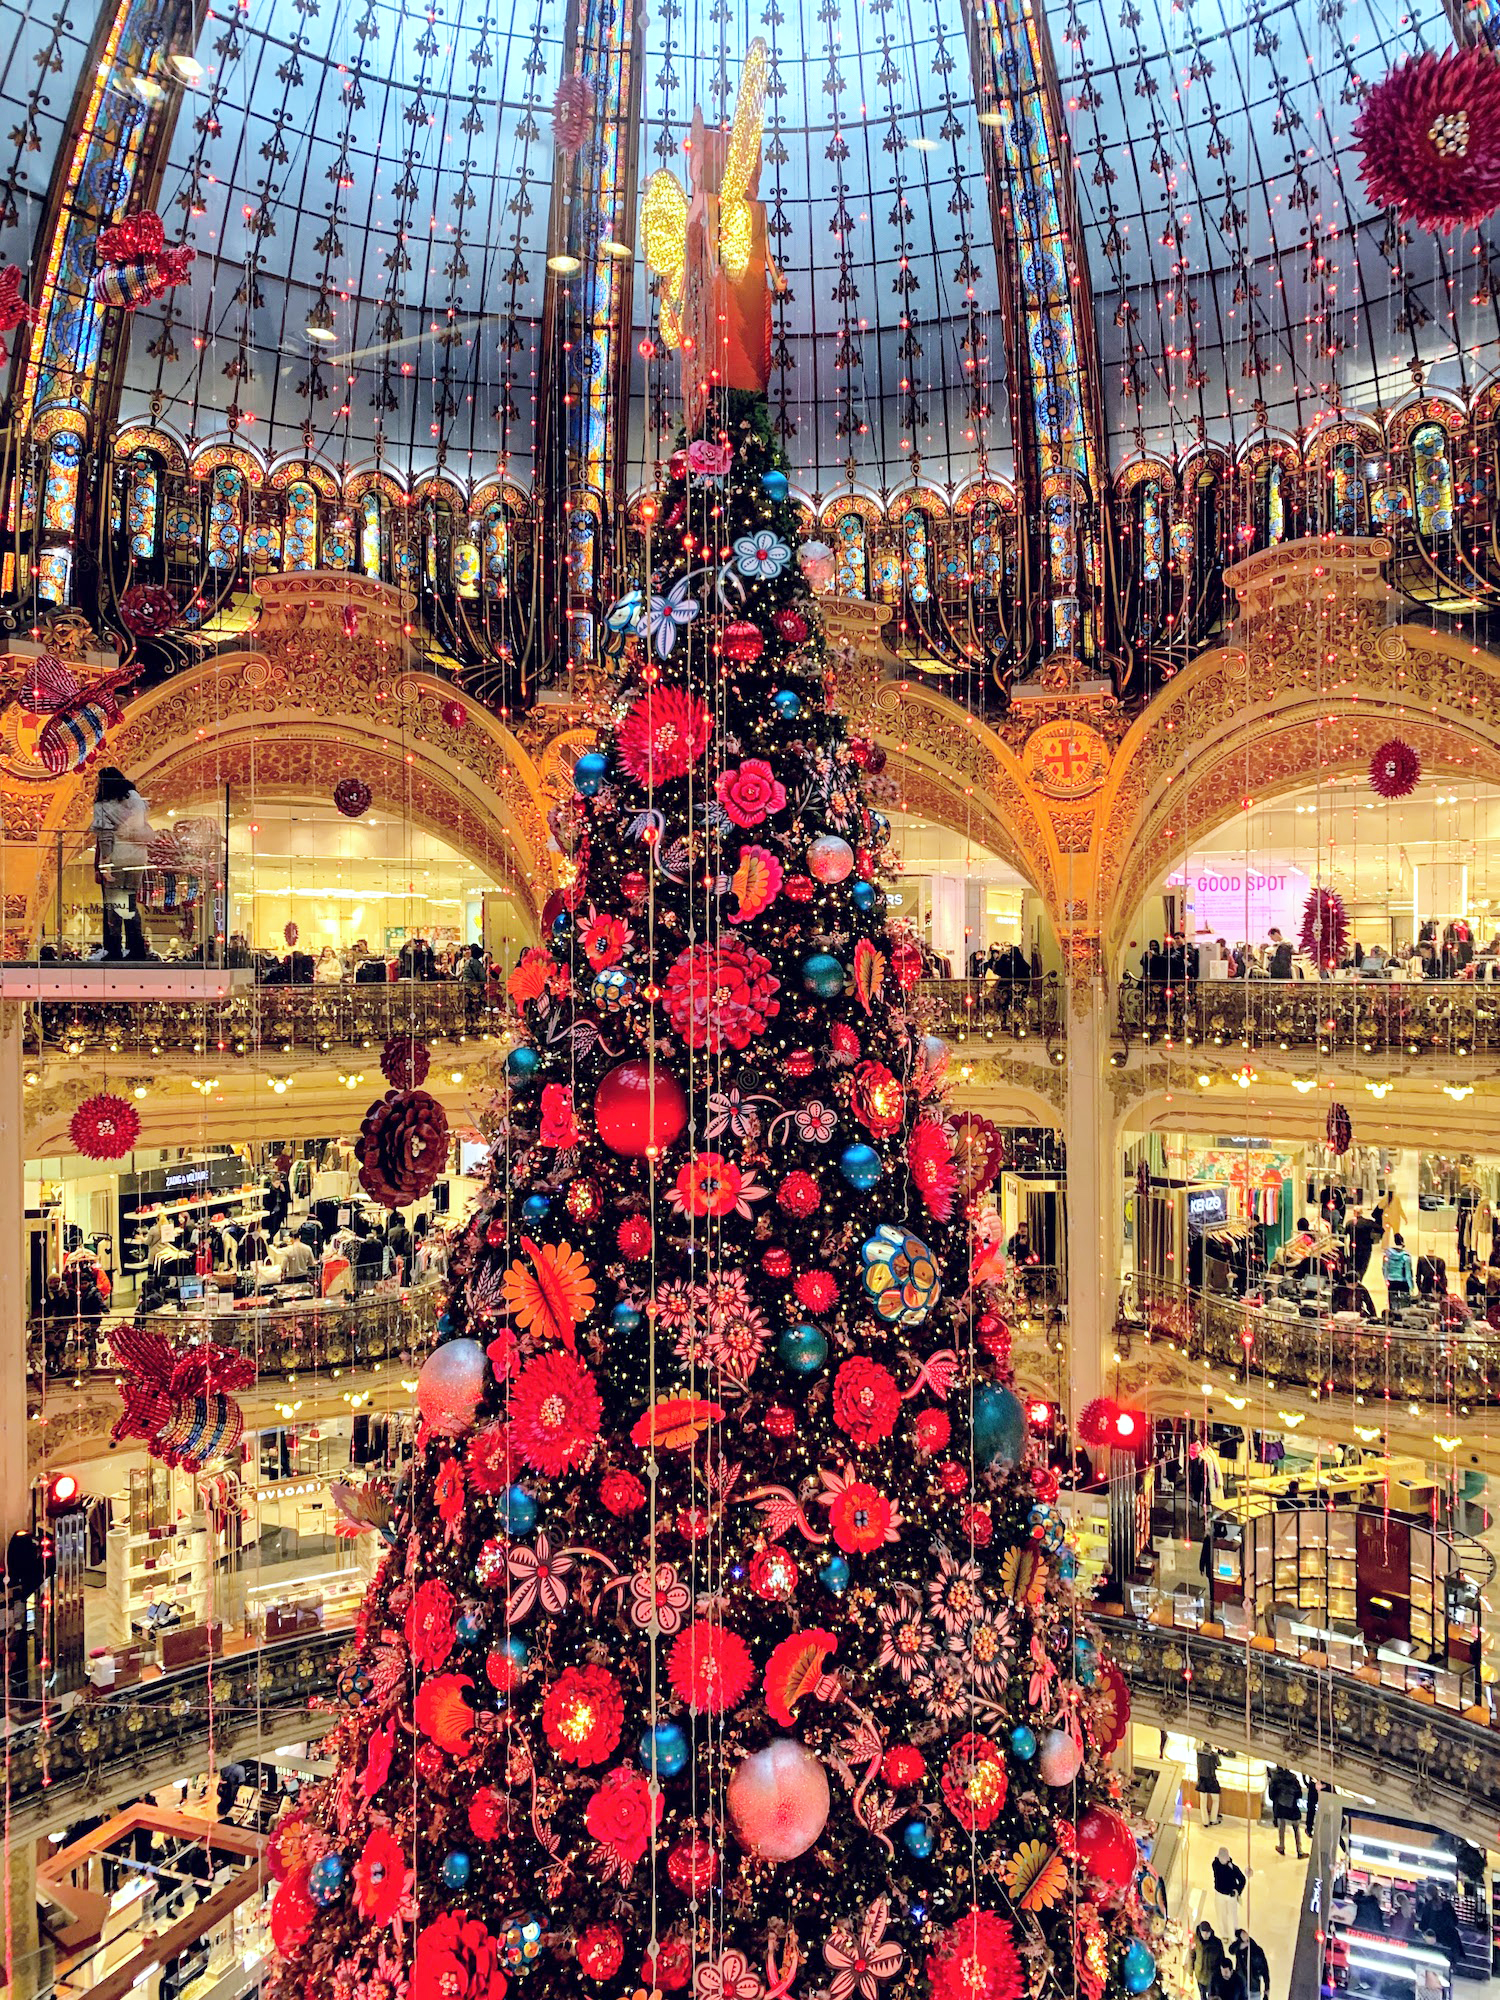 Giant Christmas tree inside the Galeries Lafayette